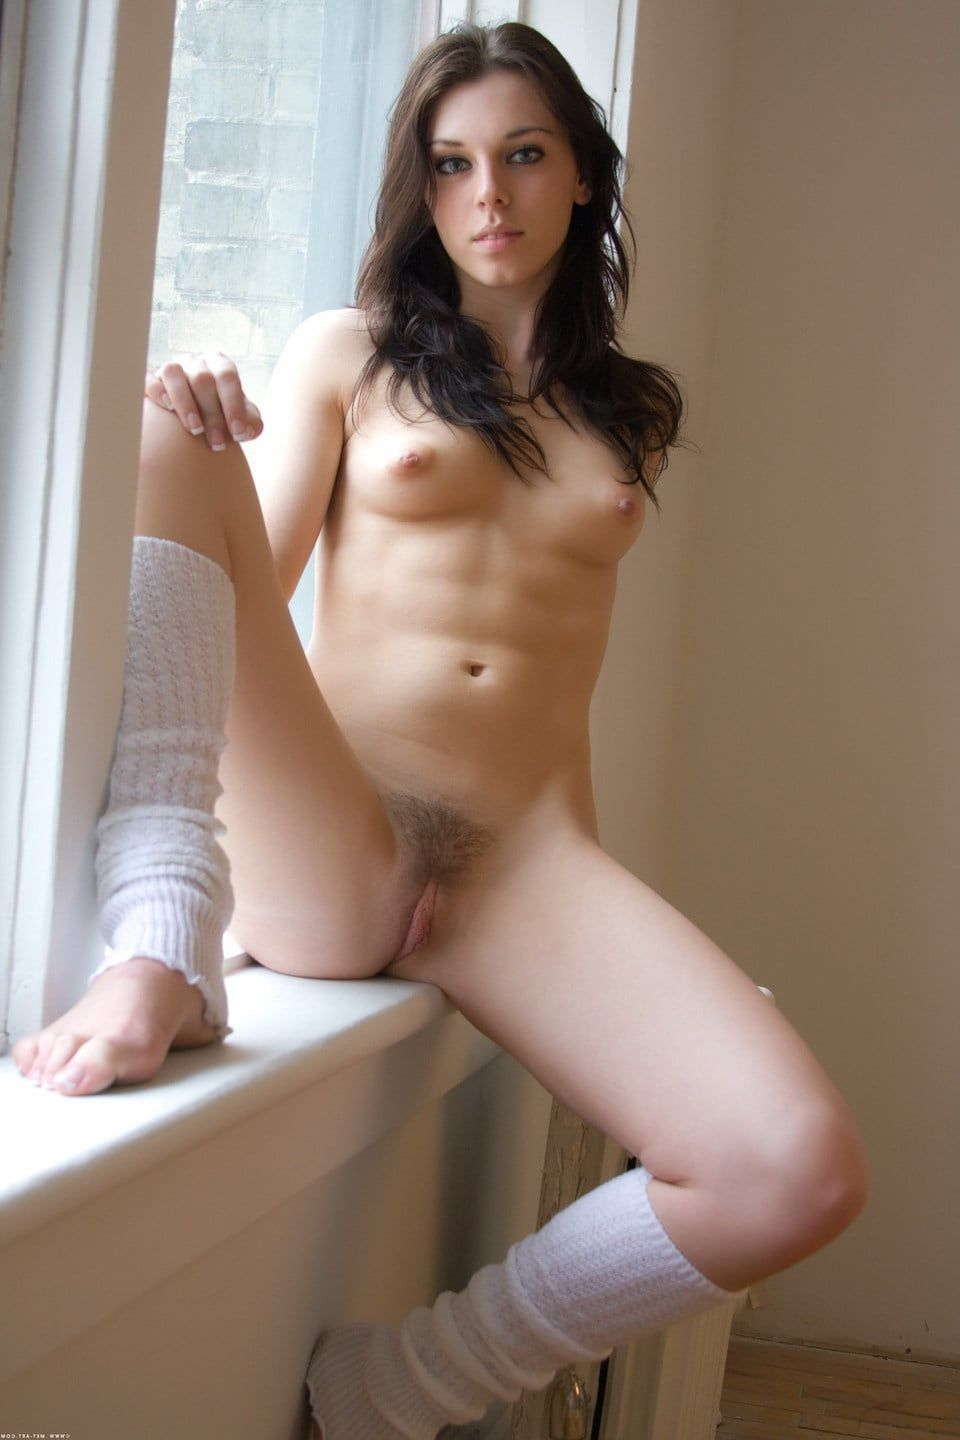 naked woman next door video